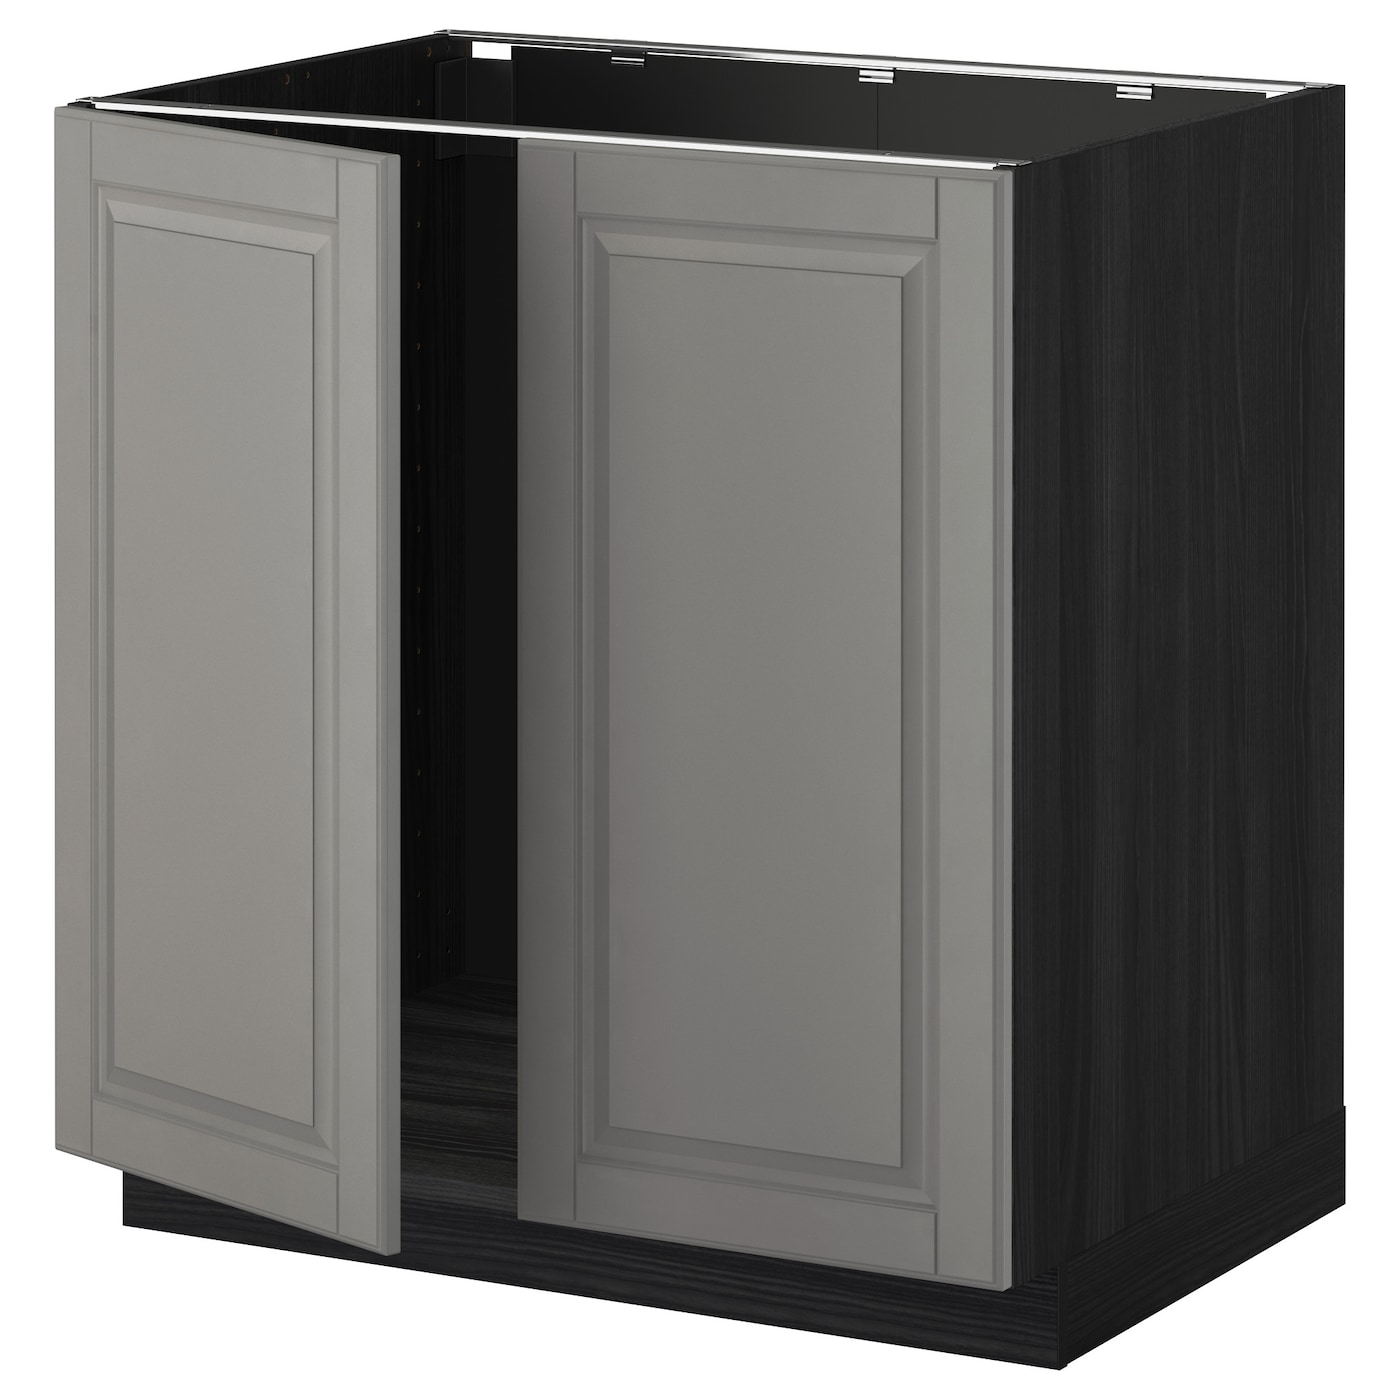 ikea bathroom cabinet doors metod base cabinet for sink 2 doors black bodbyn grey 80 17521